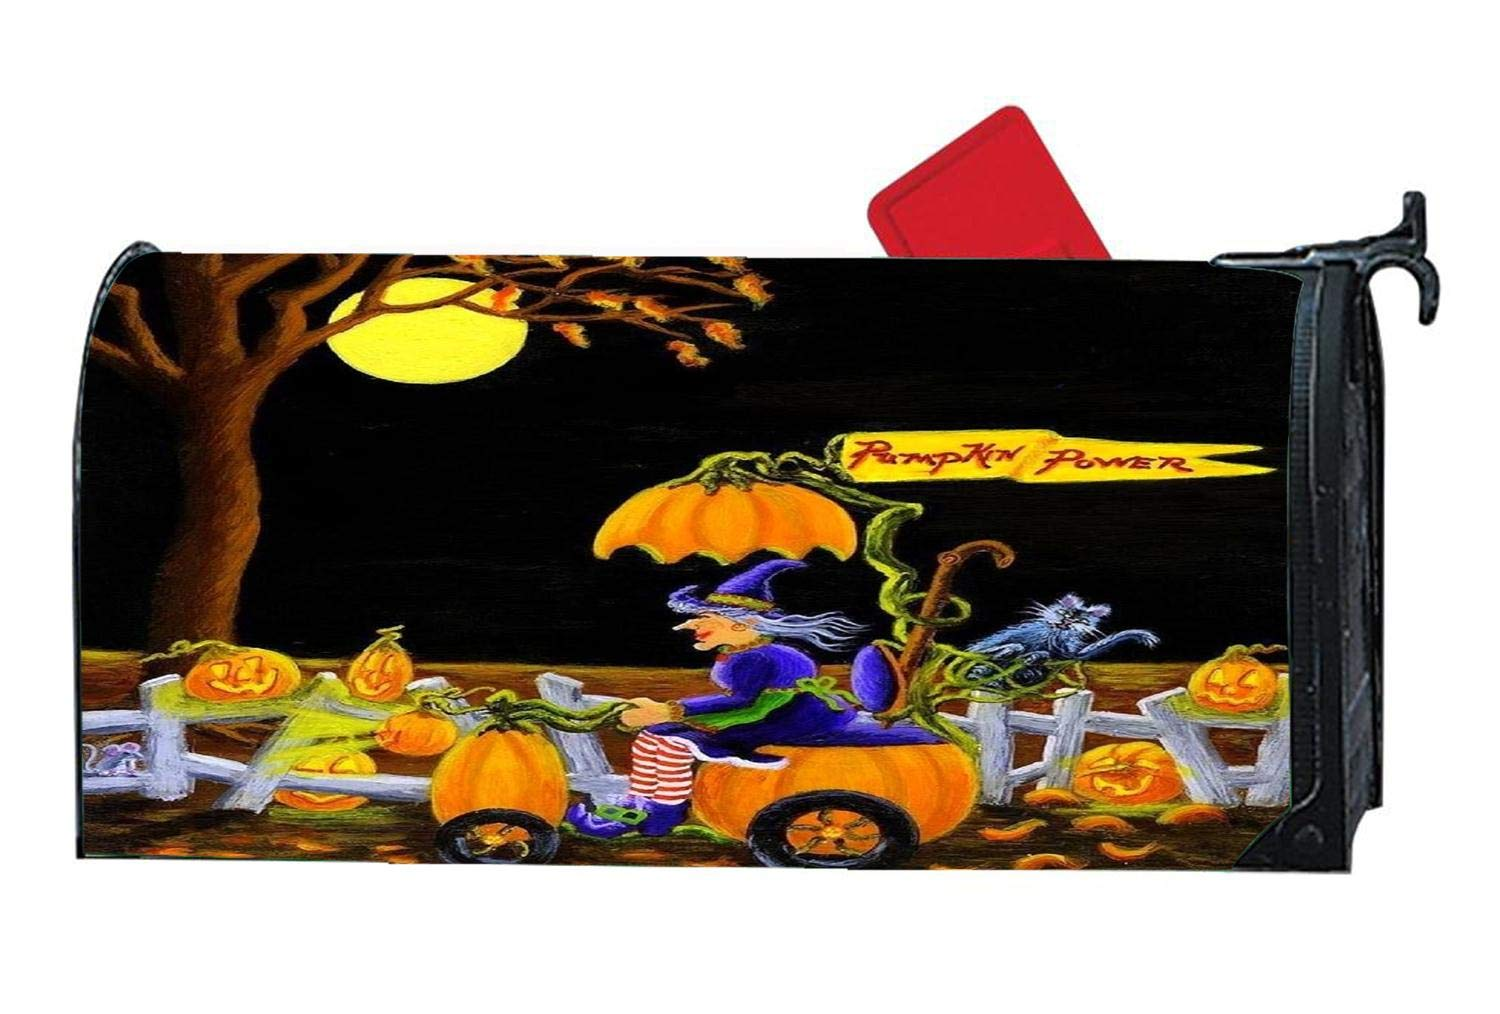 Custom Mailbox Cover Magnetic with Autumn Themed Design, Personalized MailWrap Mailbox Makeover Cover, Vinyl with Magnetic Strips on Backside - Power of Pumpkins Autumn Leaves